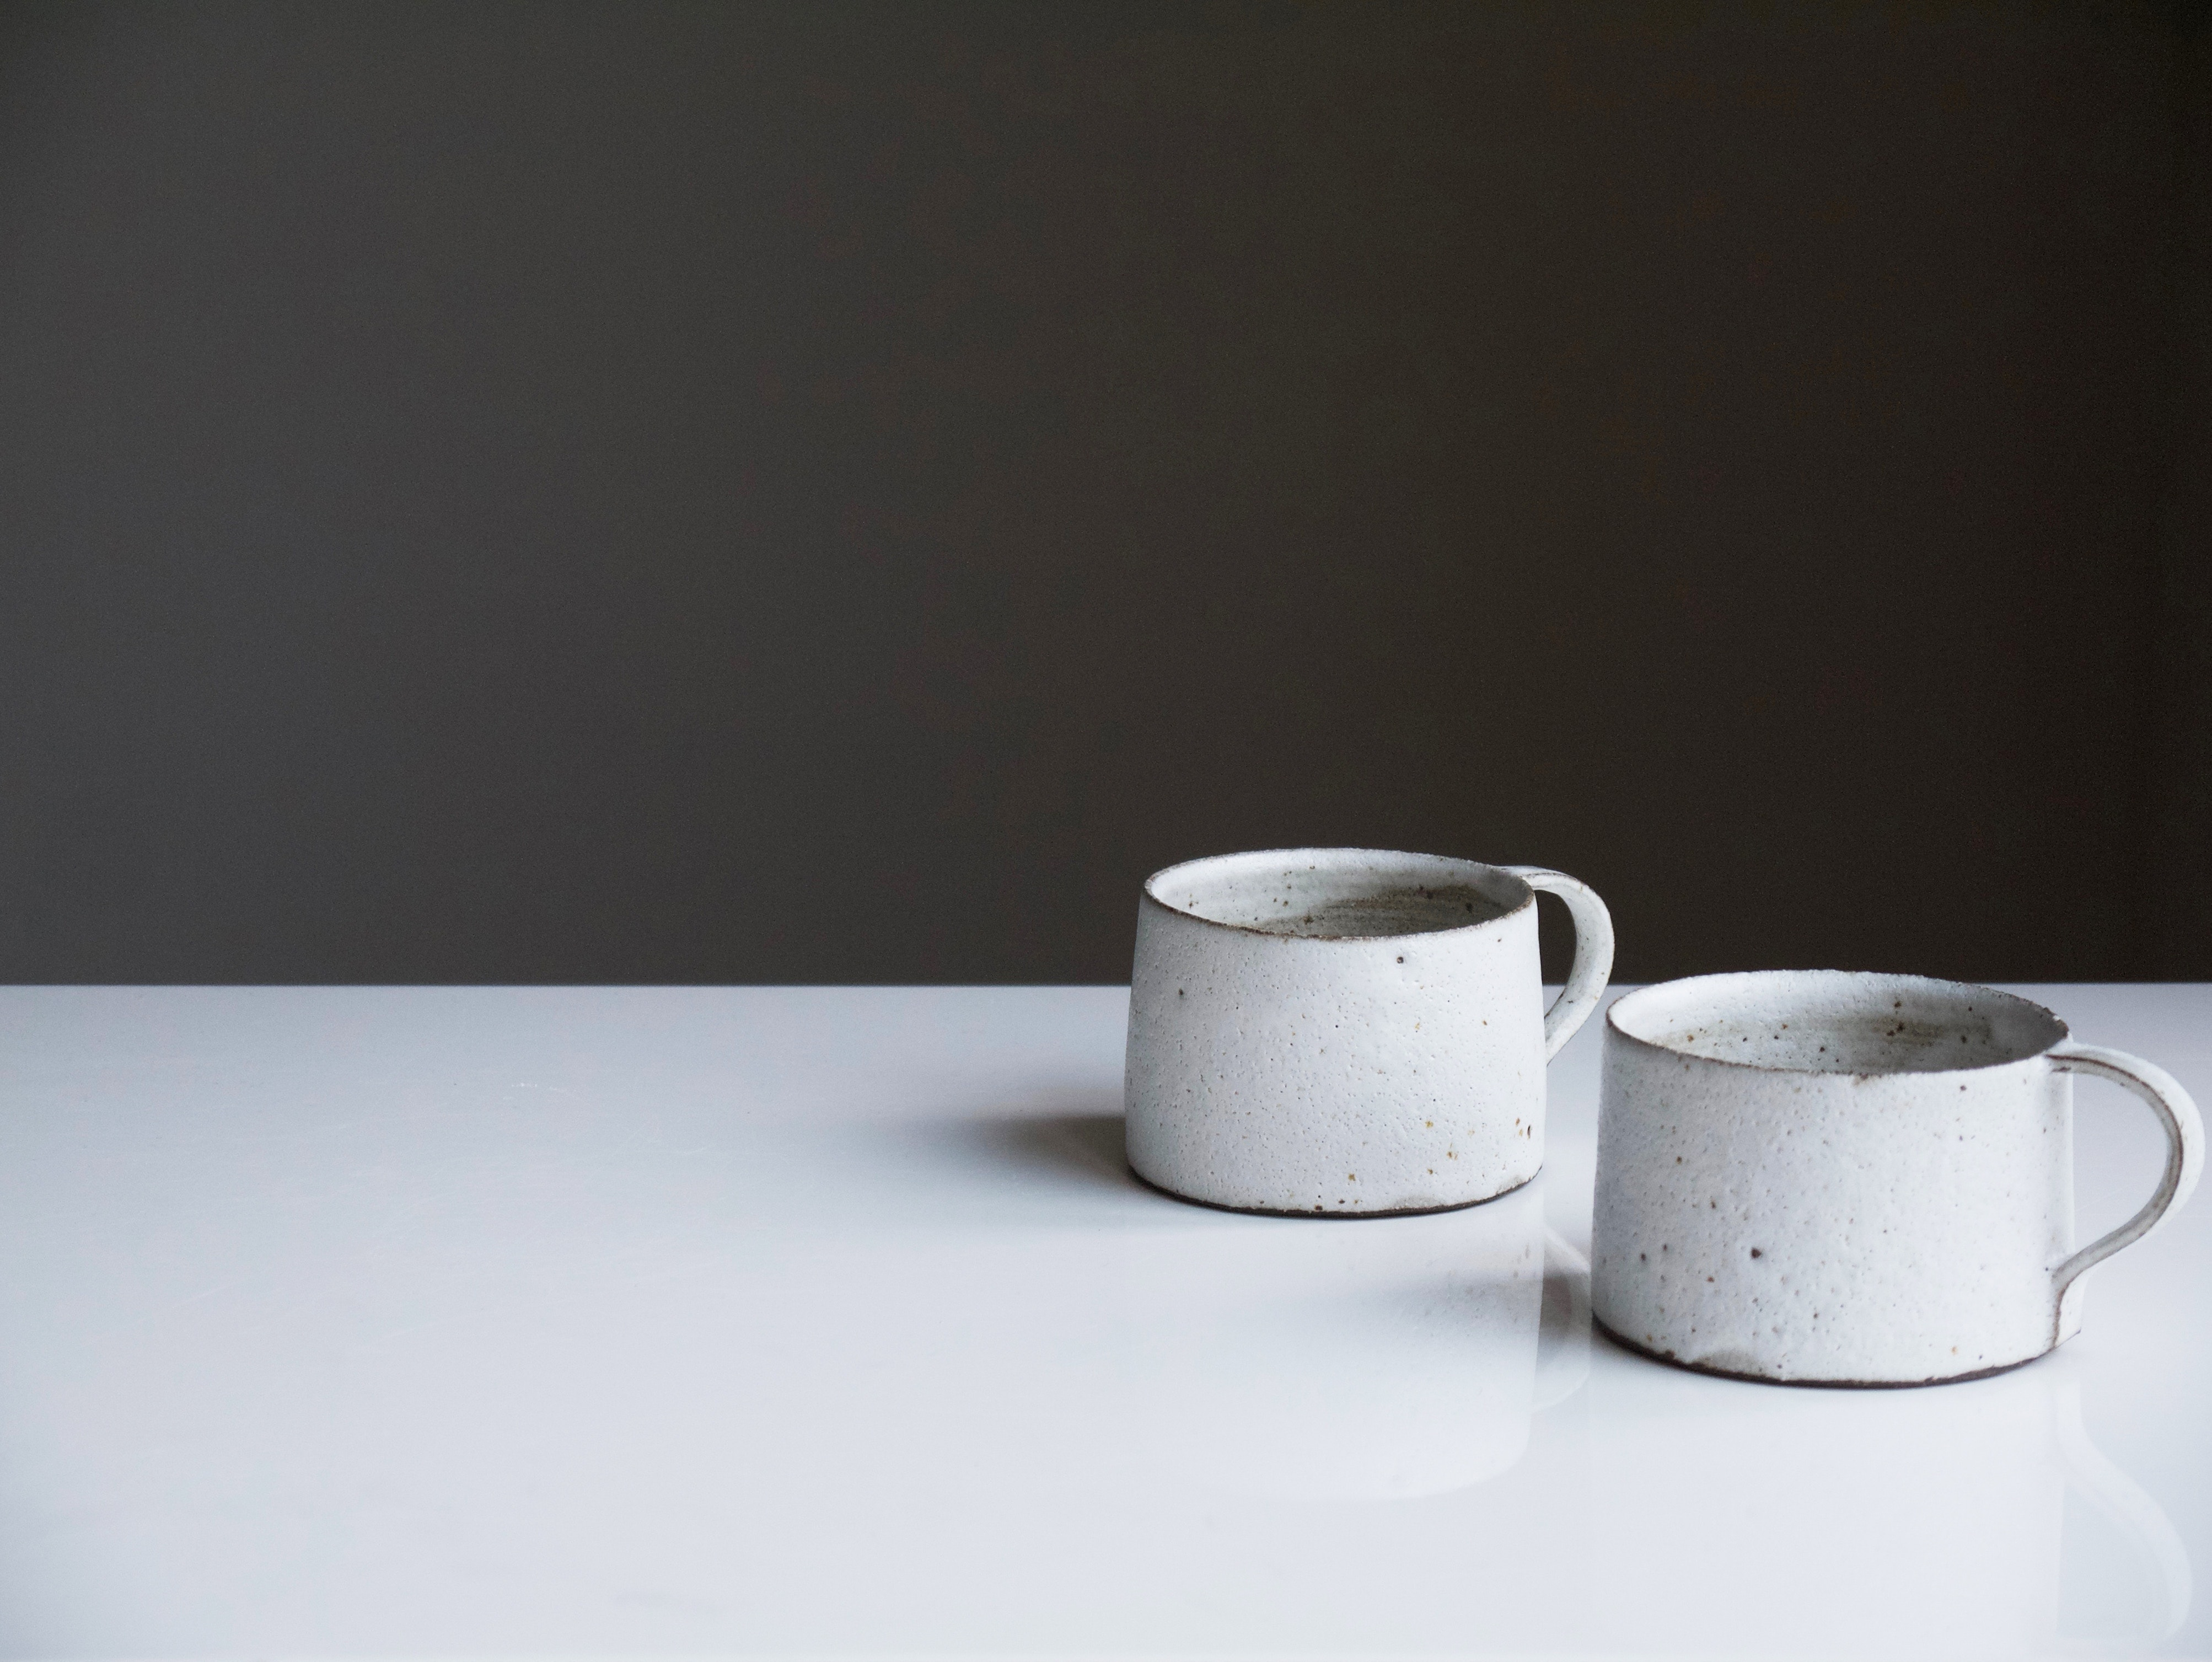 Two ceramic mugs sit on a white table